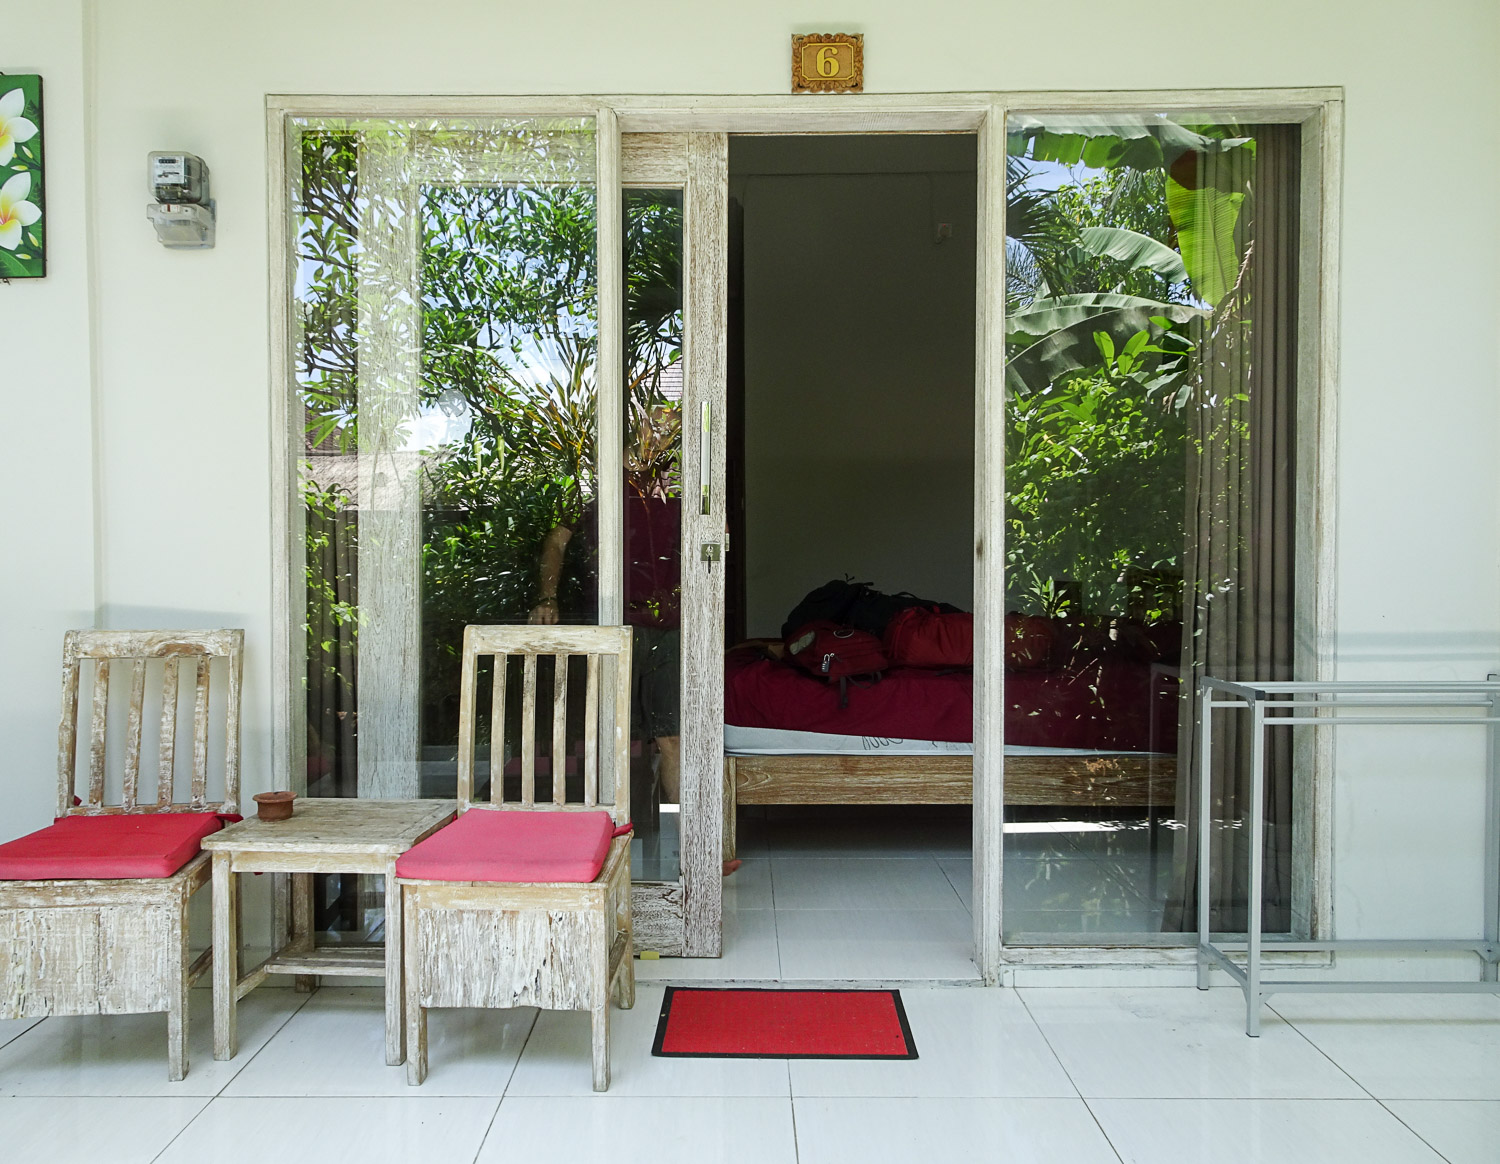 Our room and terrace at Guest House Home 46